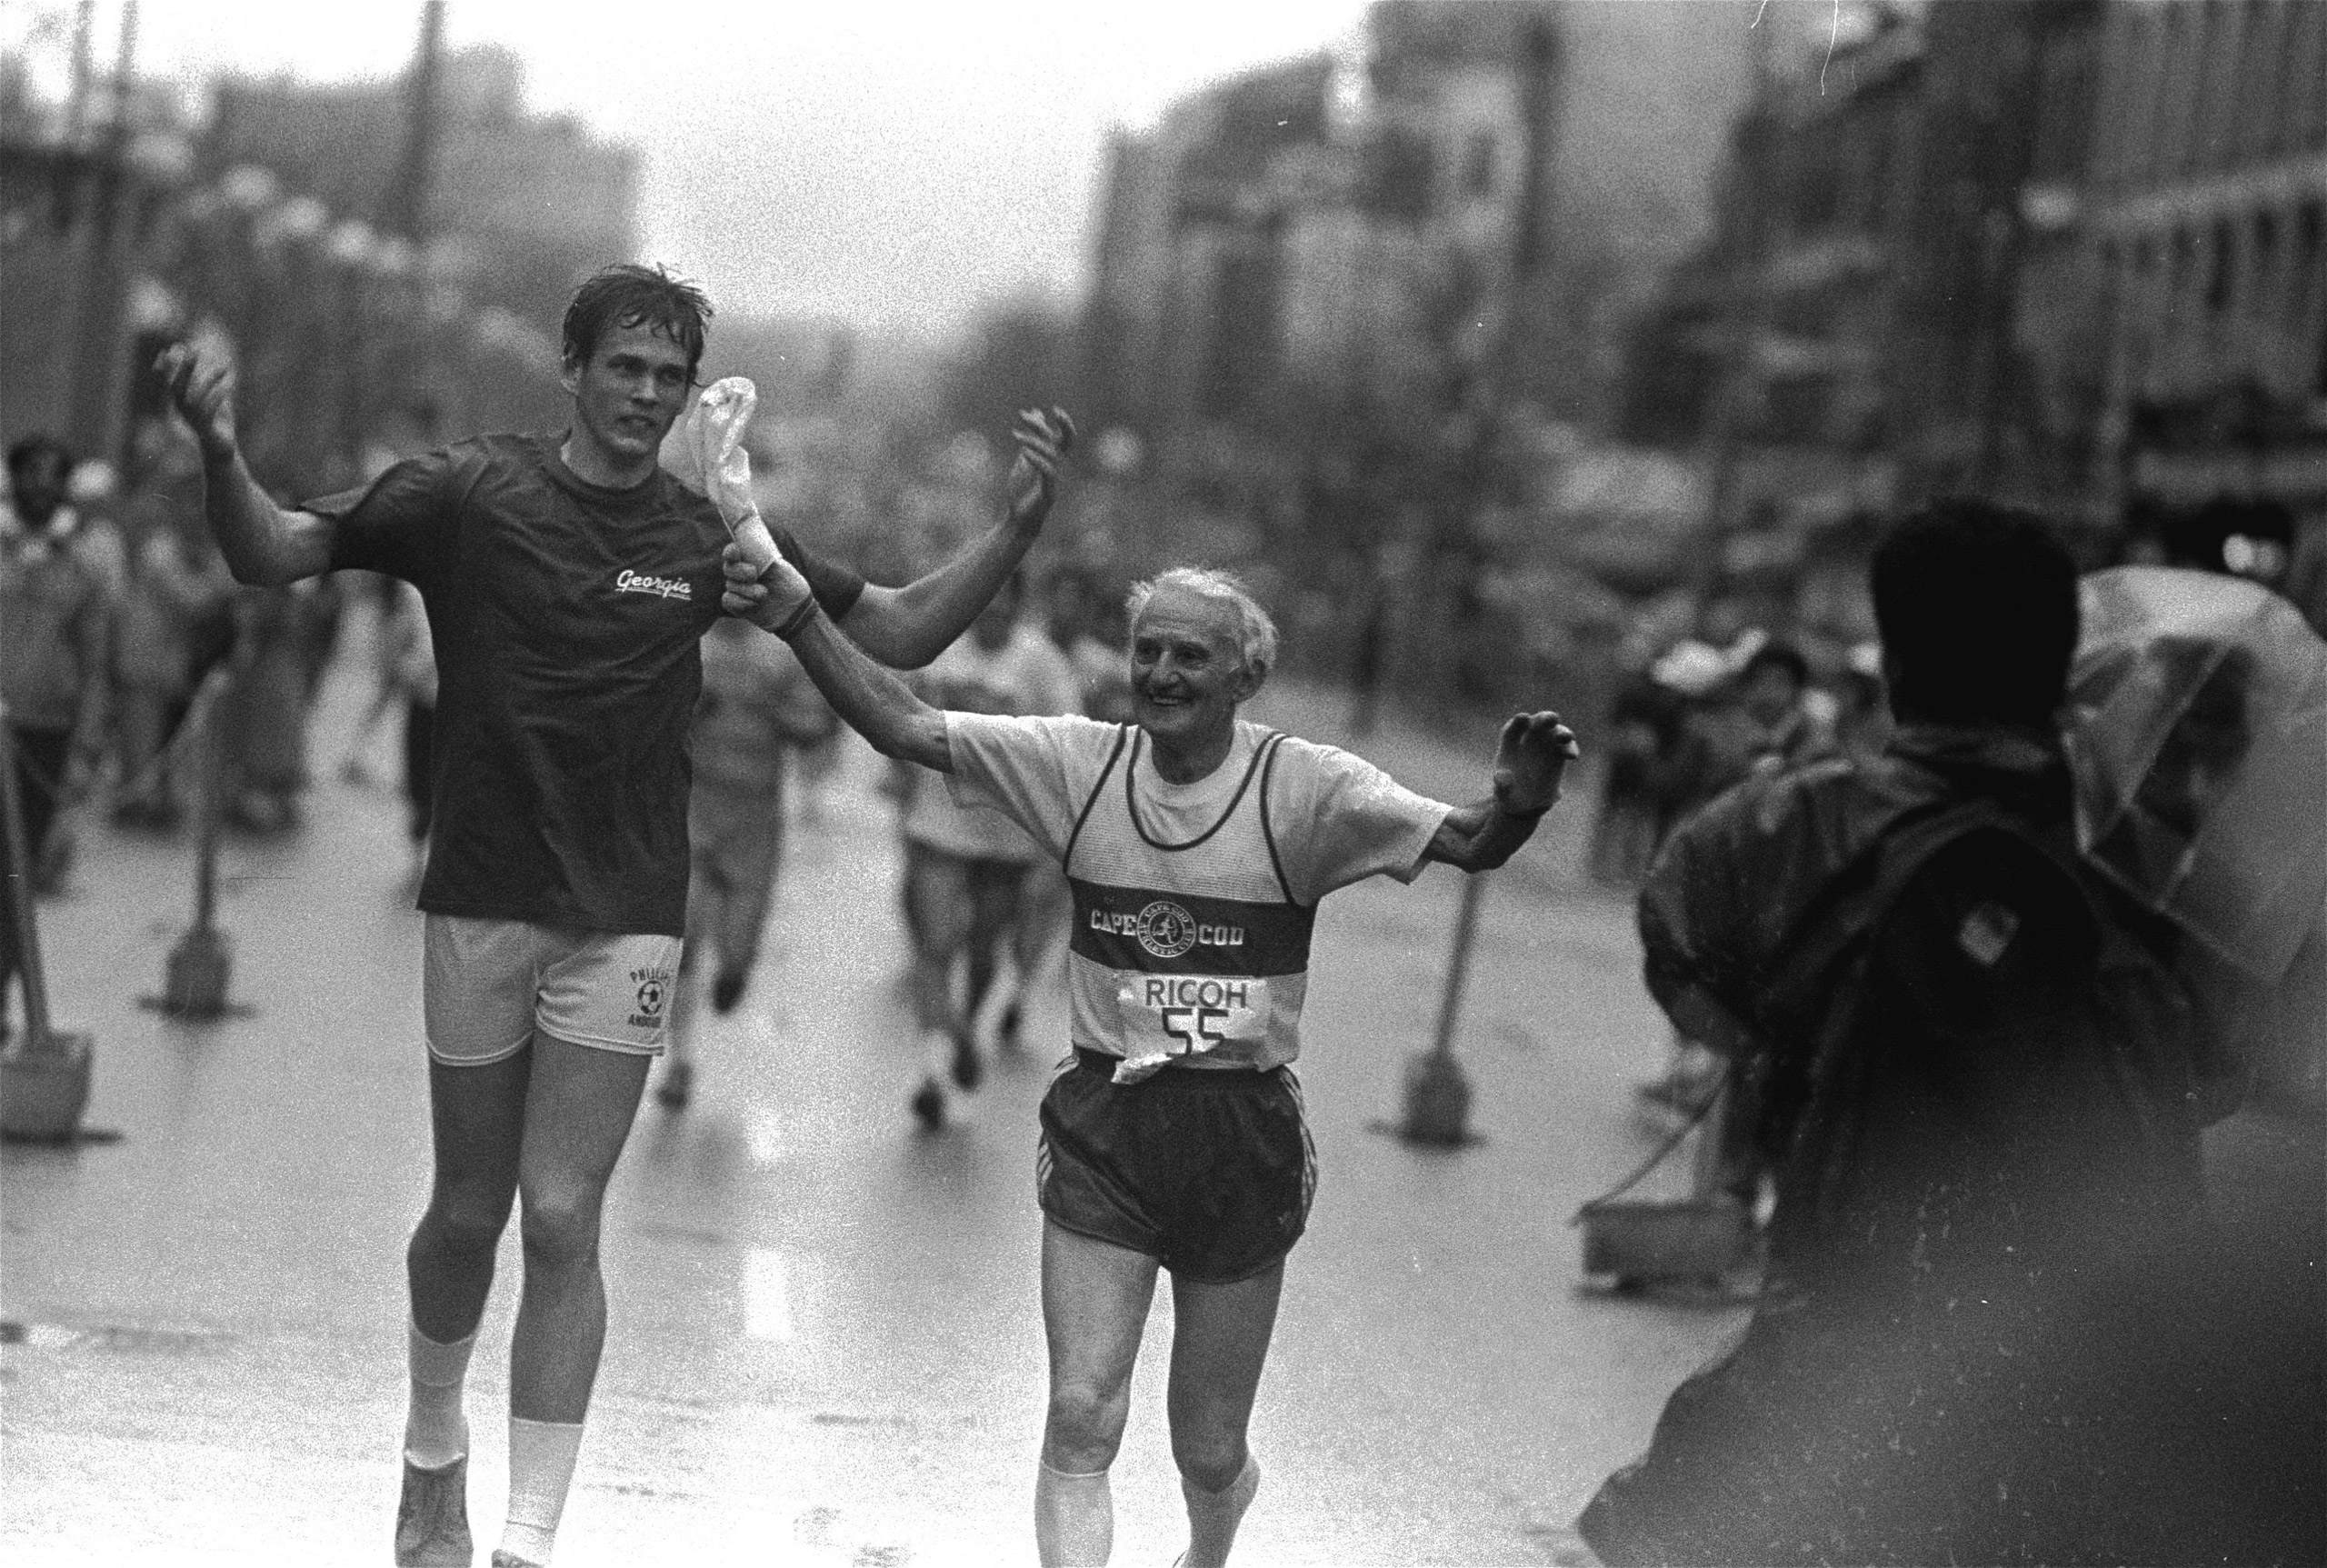 John A. Kelley, 78, smiles as he approaches the finish line at the 90th running of the Boston Marathon, April 21, 1986. Kelley's finish marked his 55th Boston Marathon.